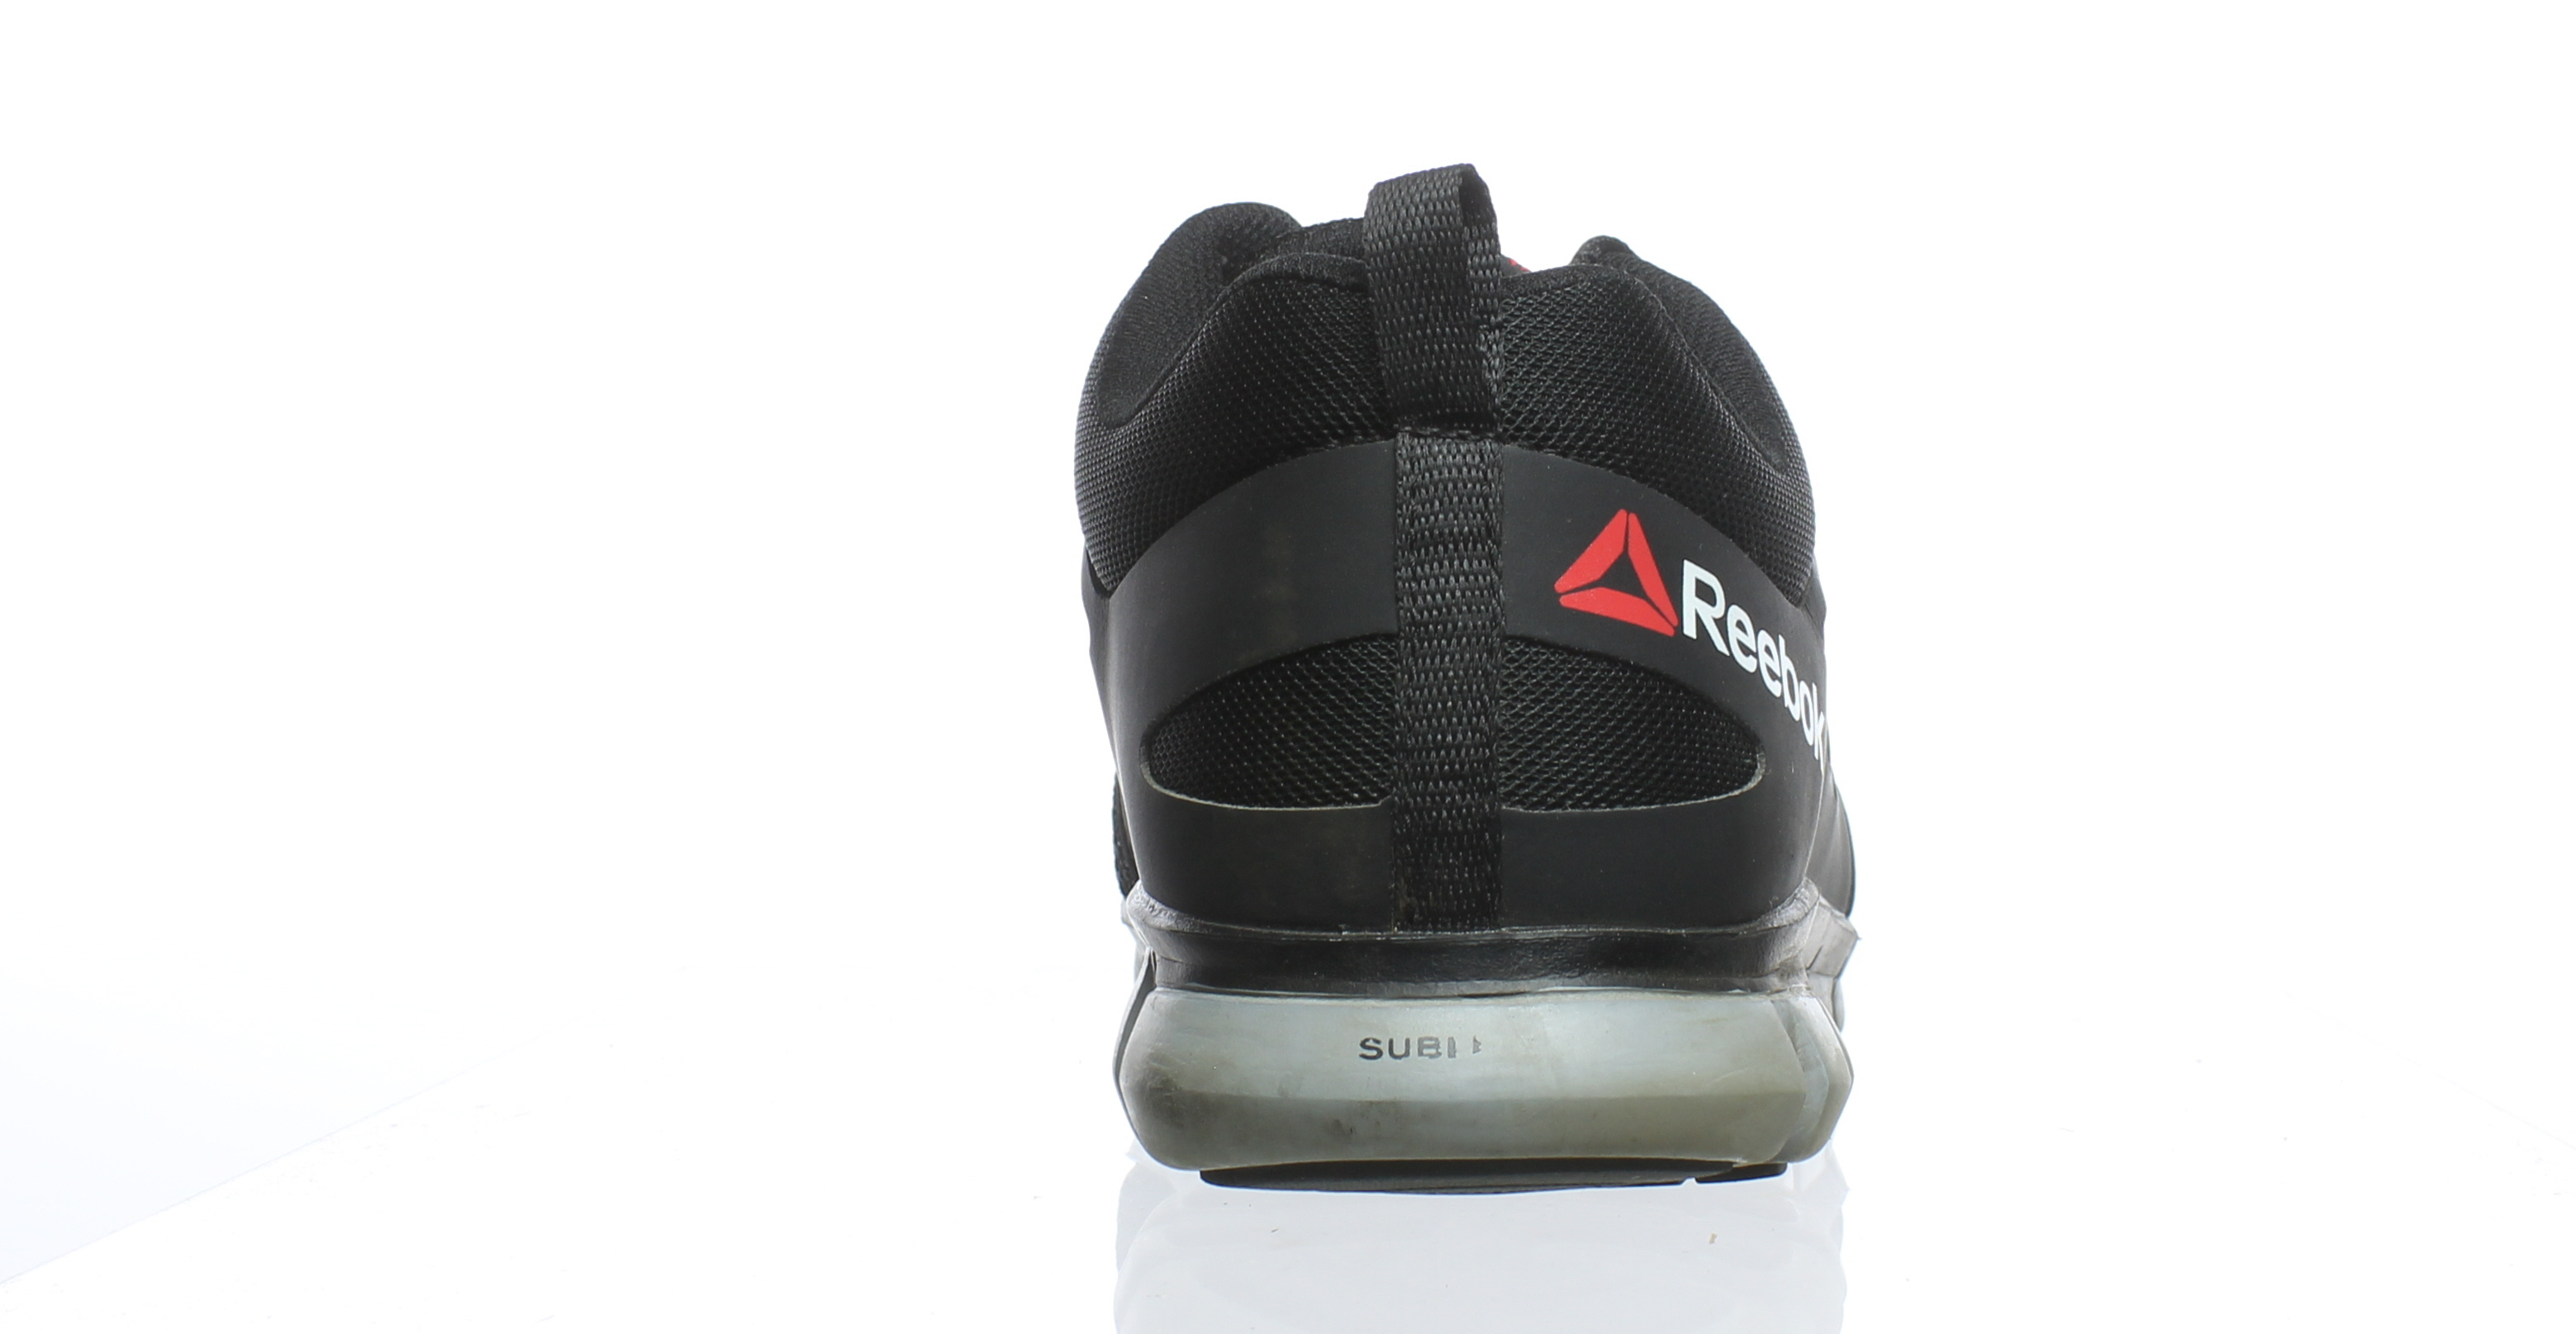 4c641a7da740 Reebok Mens Sublite Cushion Work Black Safety Shoes Size 11.5 ...